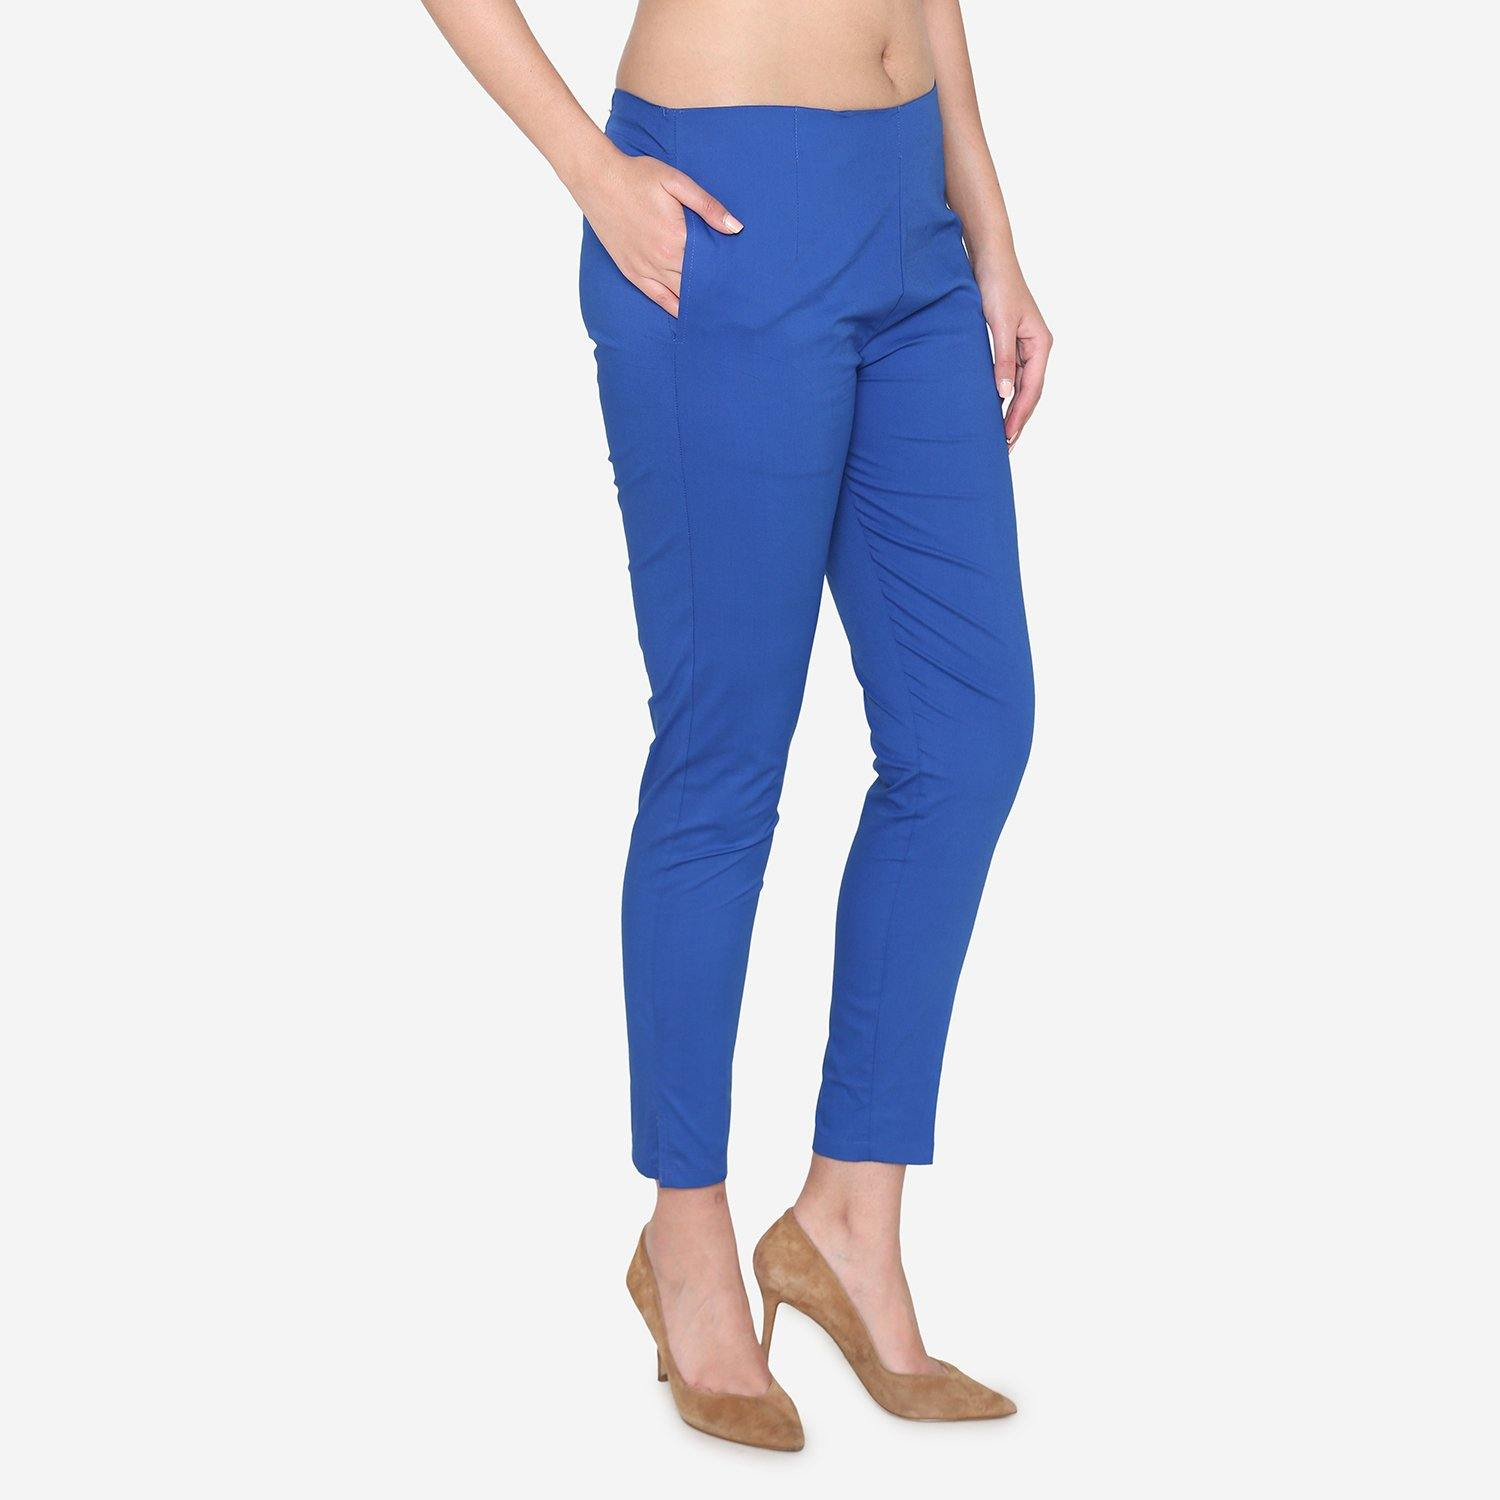 Vami Women's Cotton Formal Trousers - True Blue